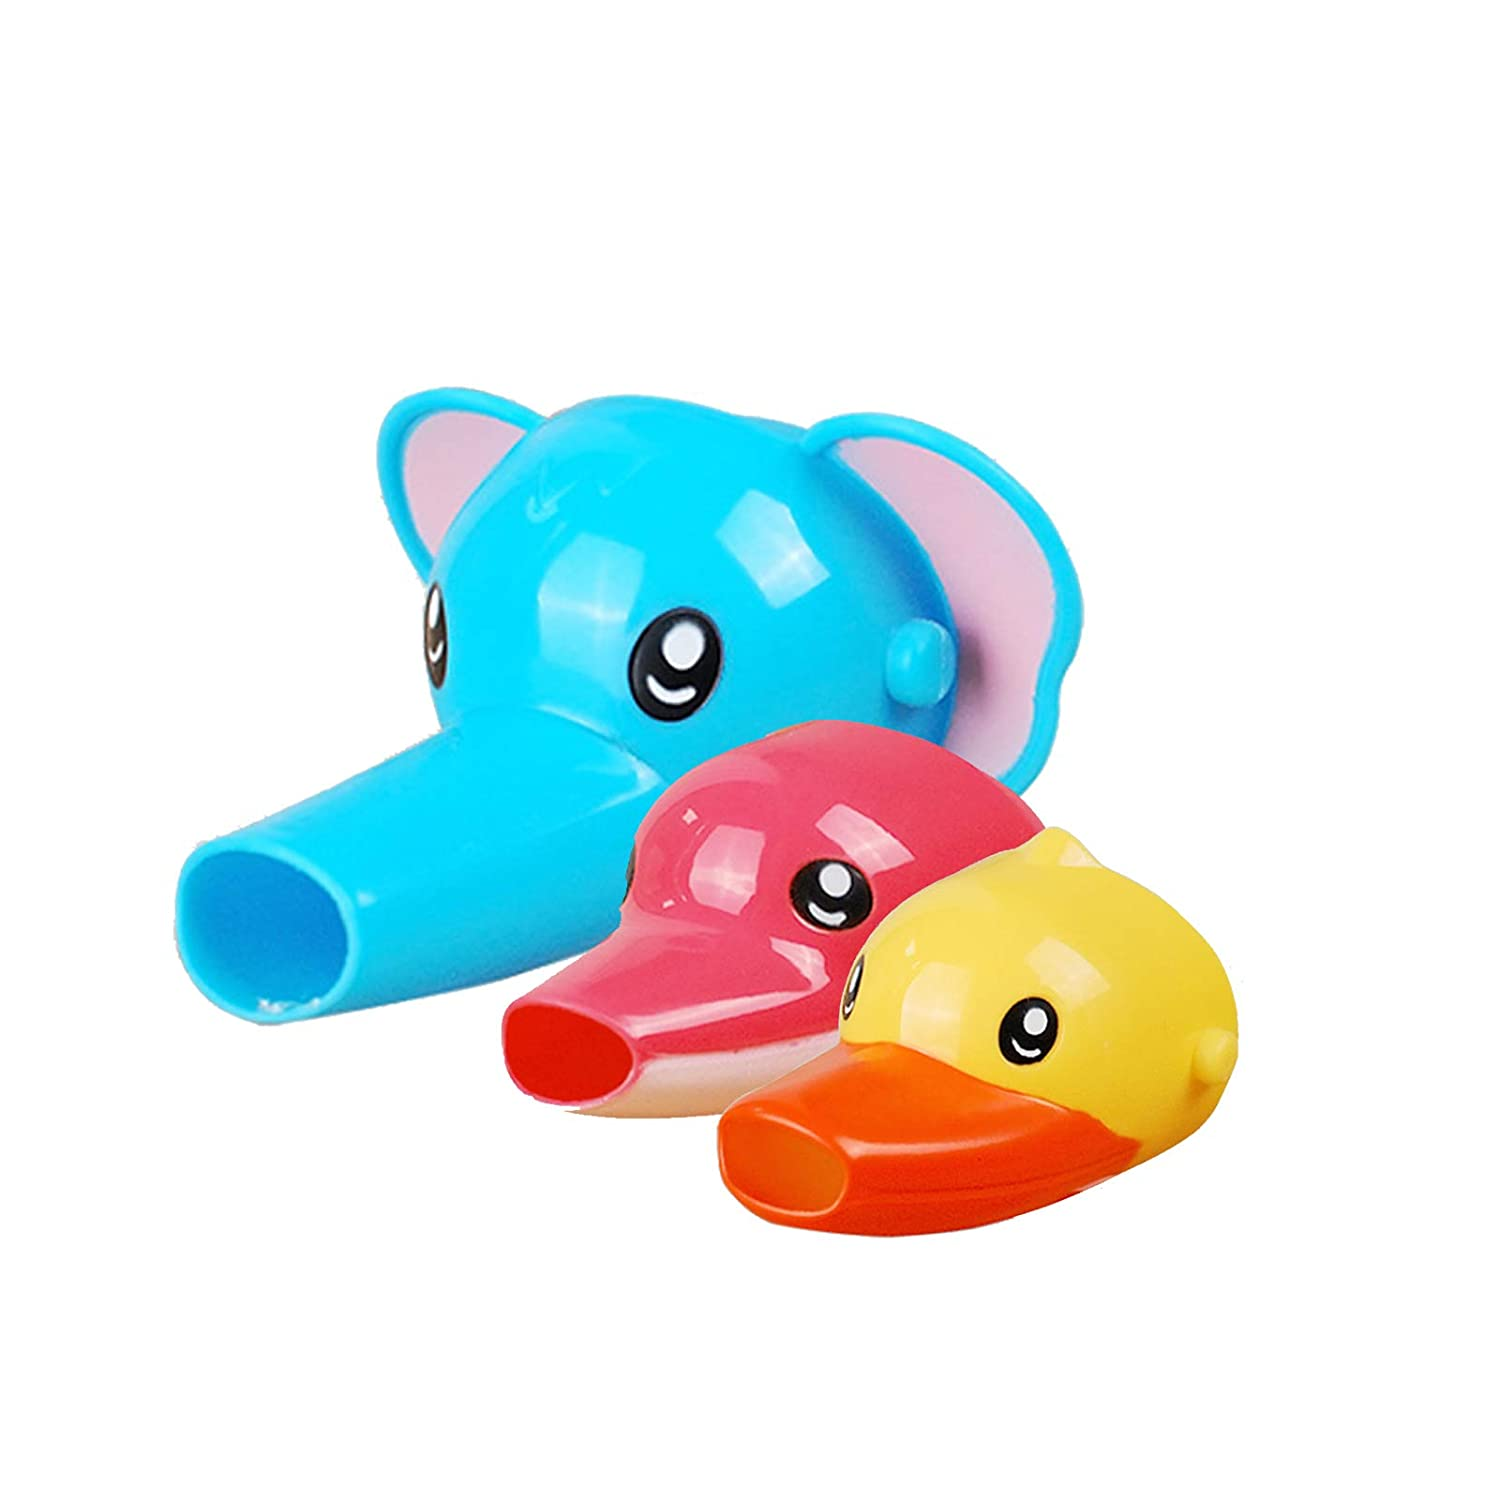 1Pcs Cartoon Faucet Extender Sink Handle Extender for Toddler, Baby, Children Safe and Fun Hand-Washing Solution (Blue Elephant)